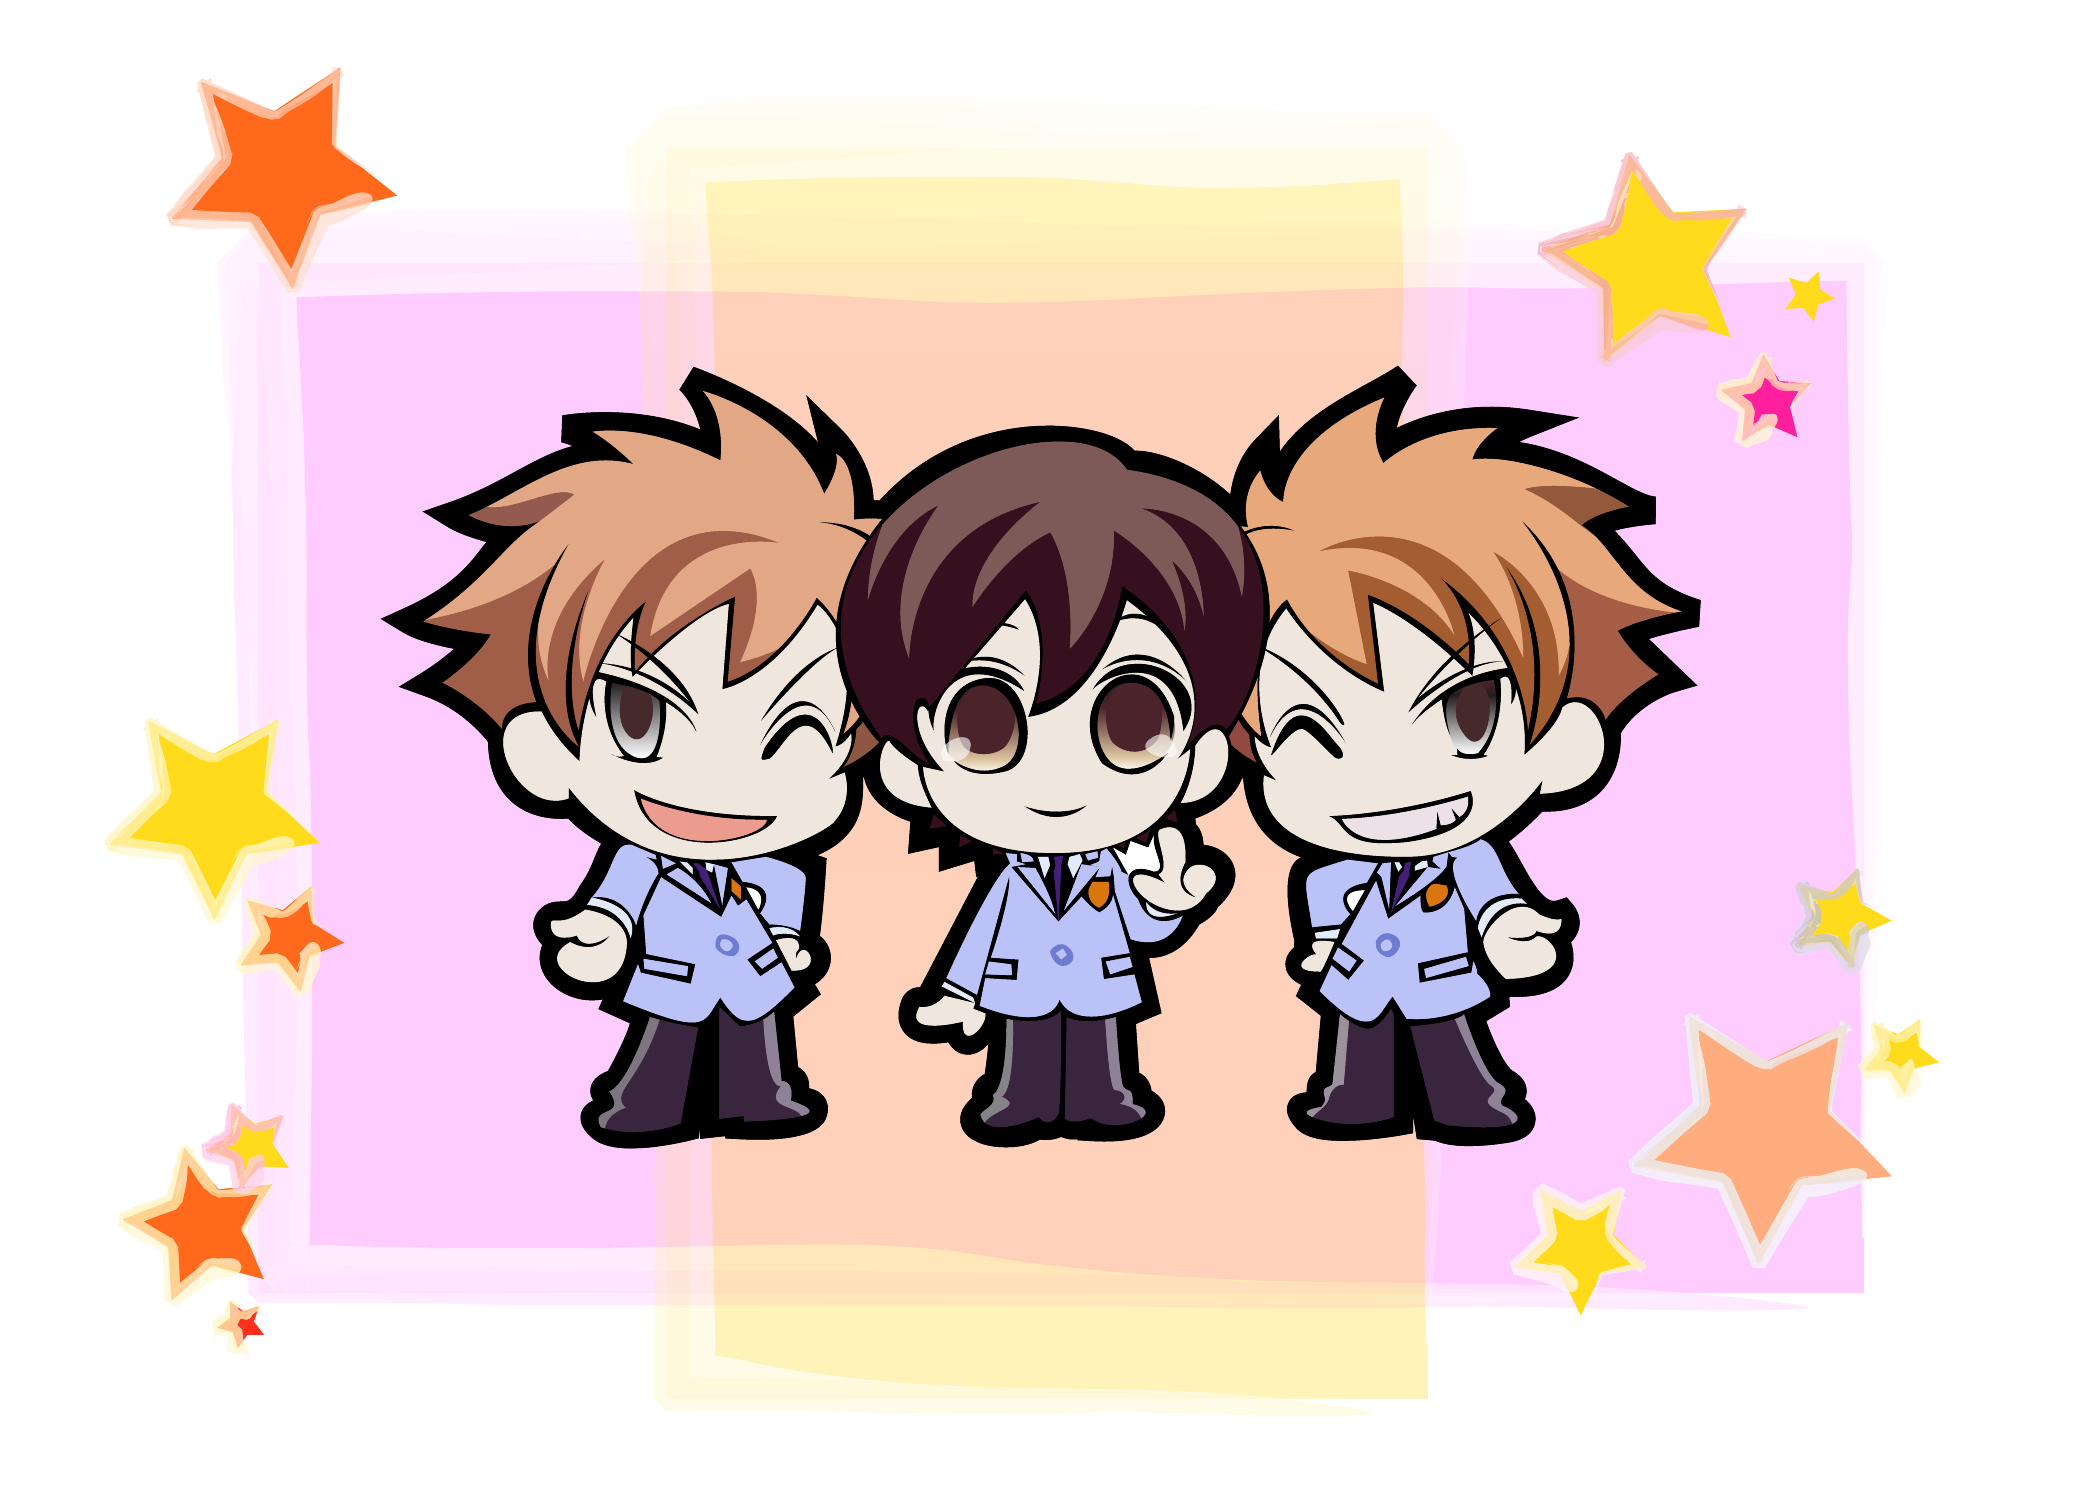 Ouran Host Club - Friends by MargotYvy on DeviantArt